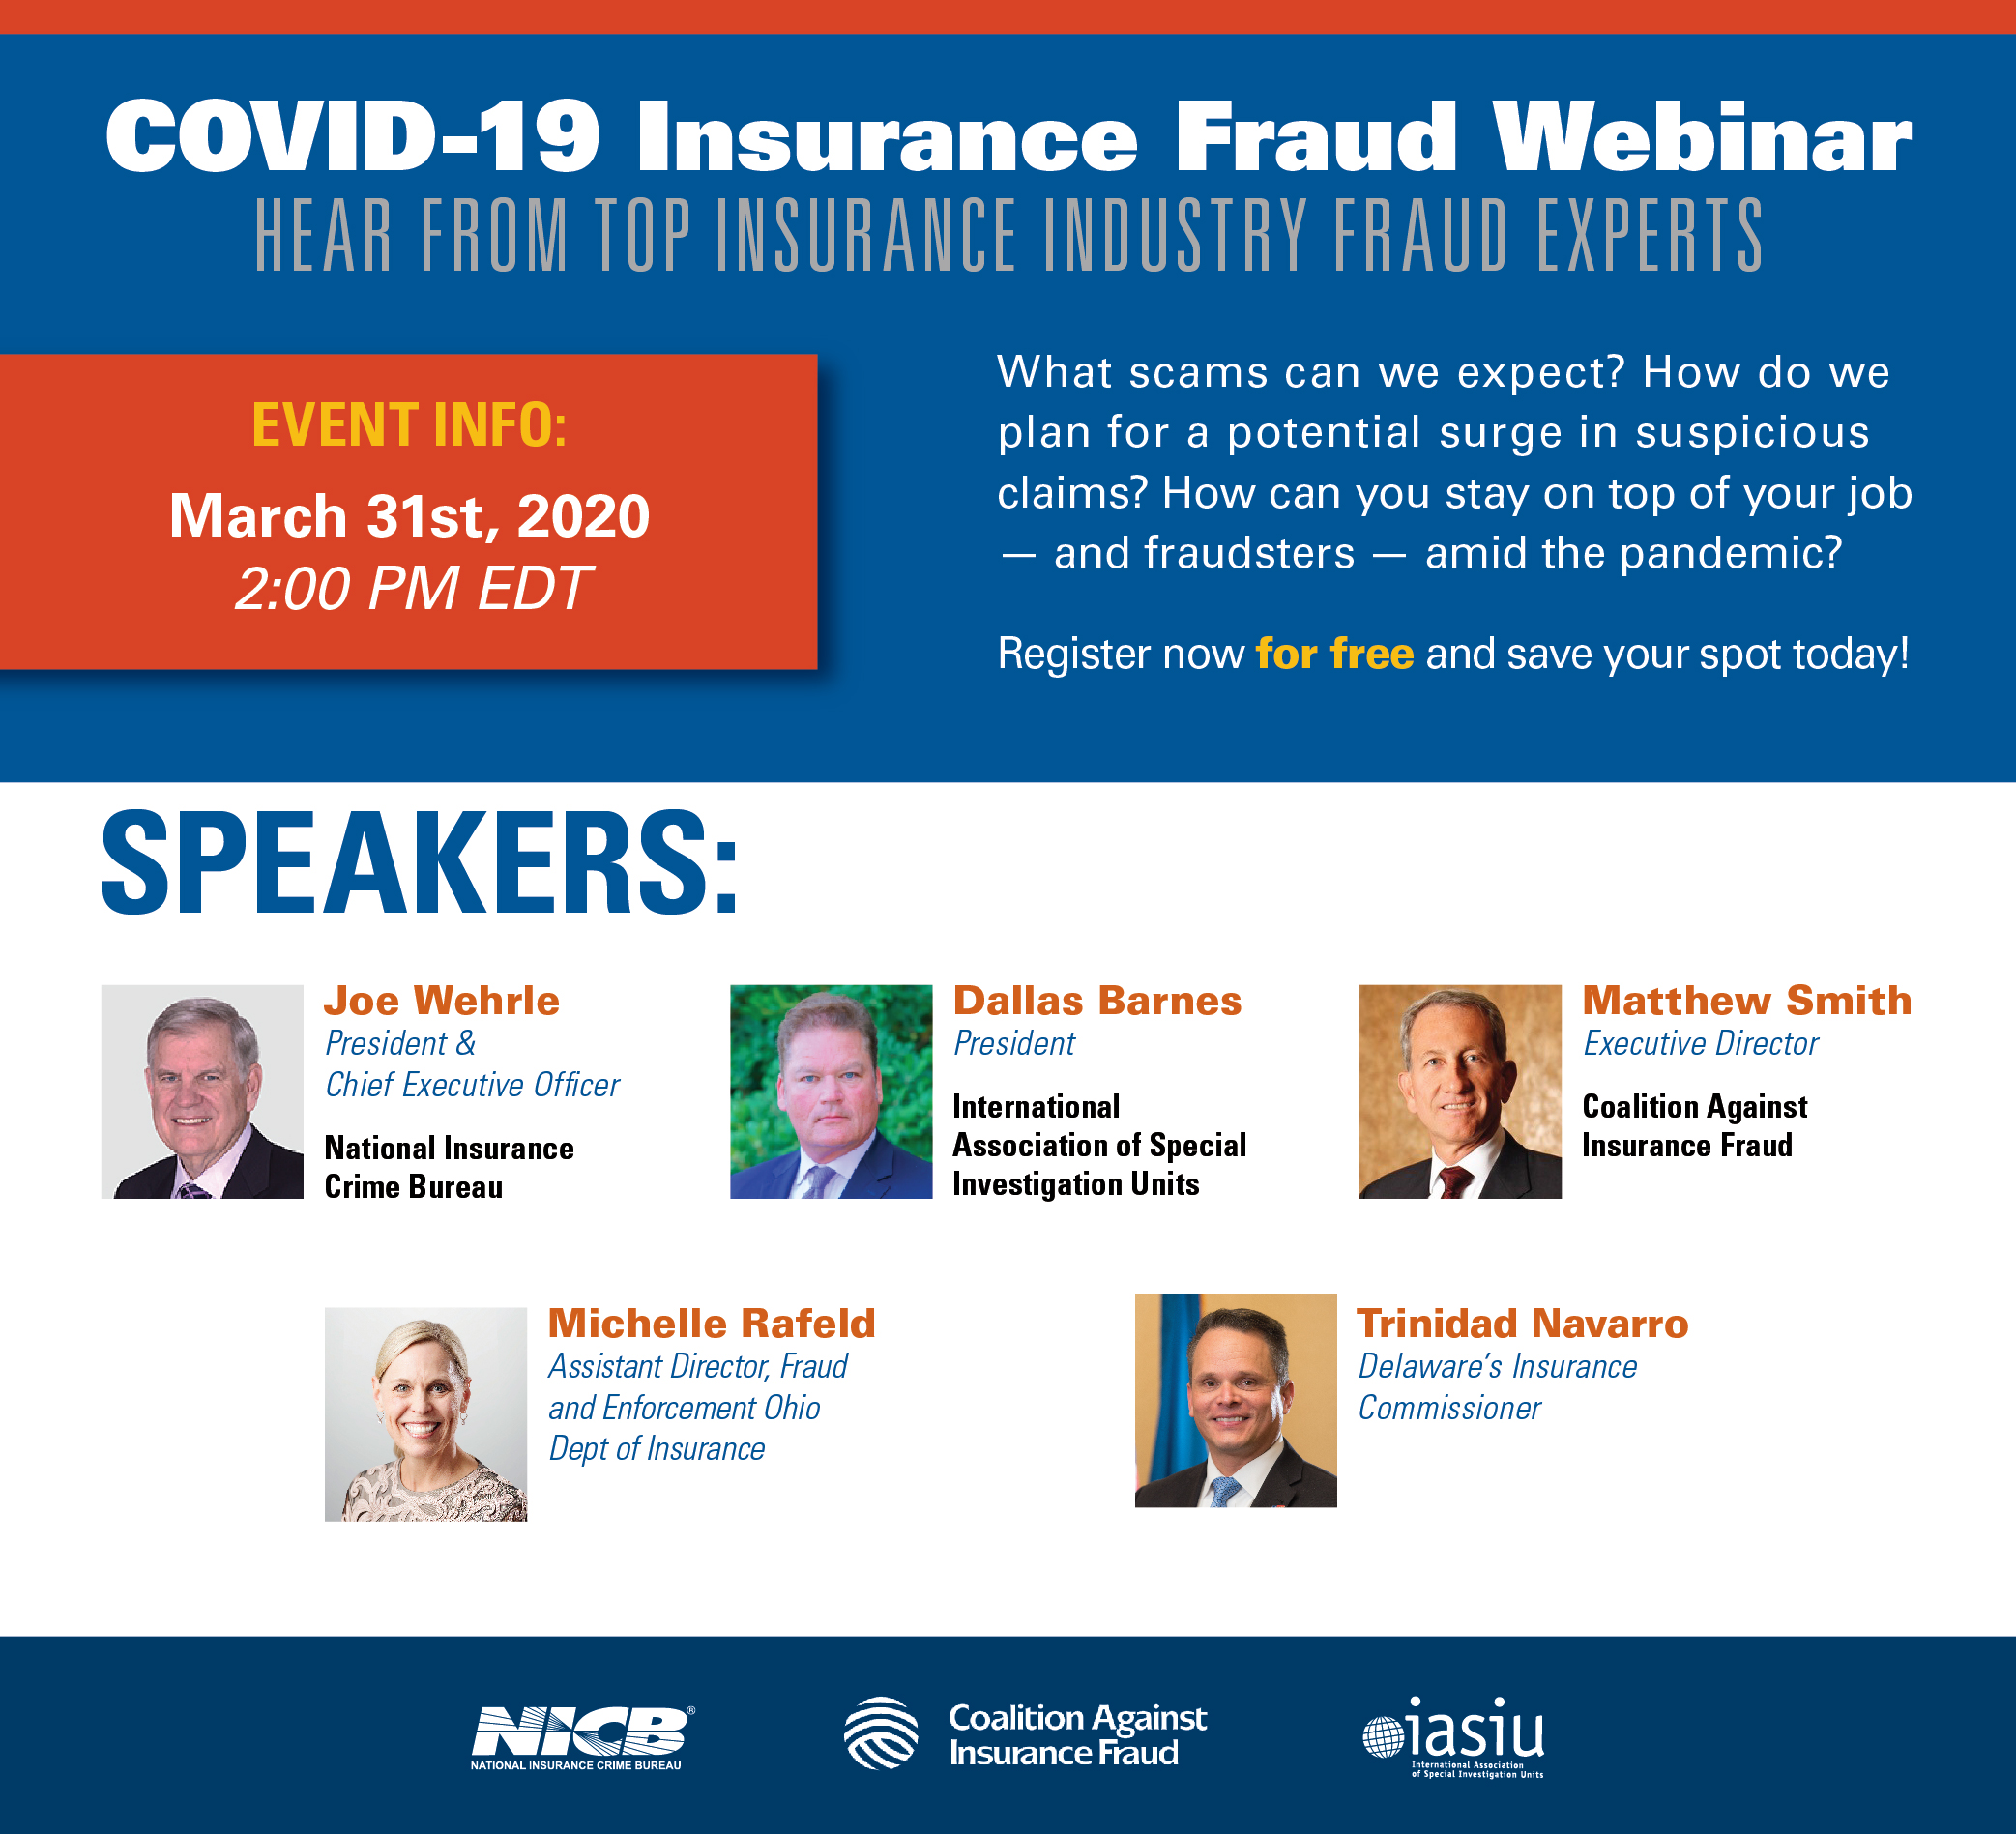 Covid 19 Insurance Fraud Webinar On March 31 National Insurance